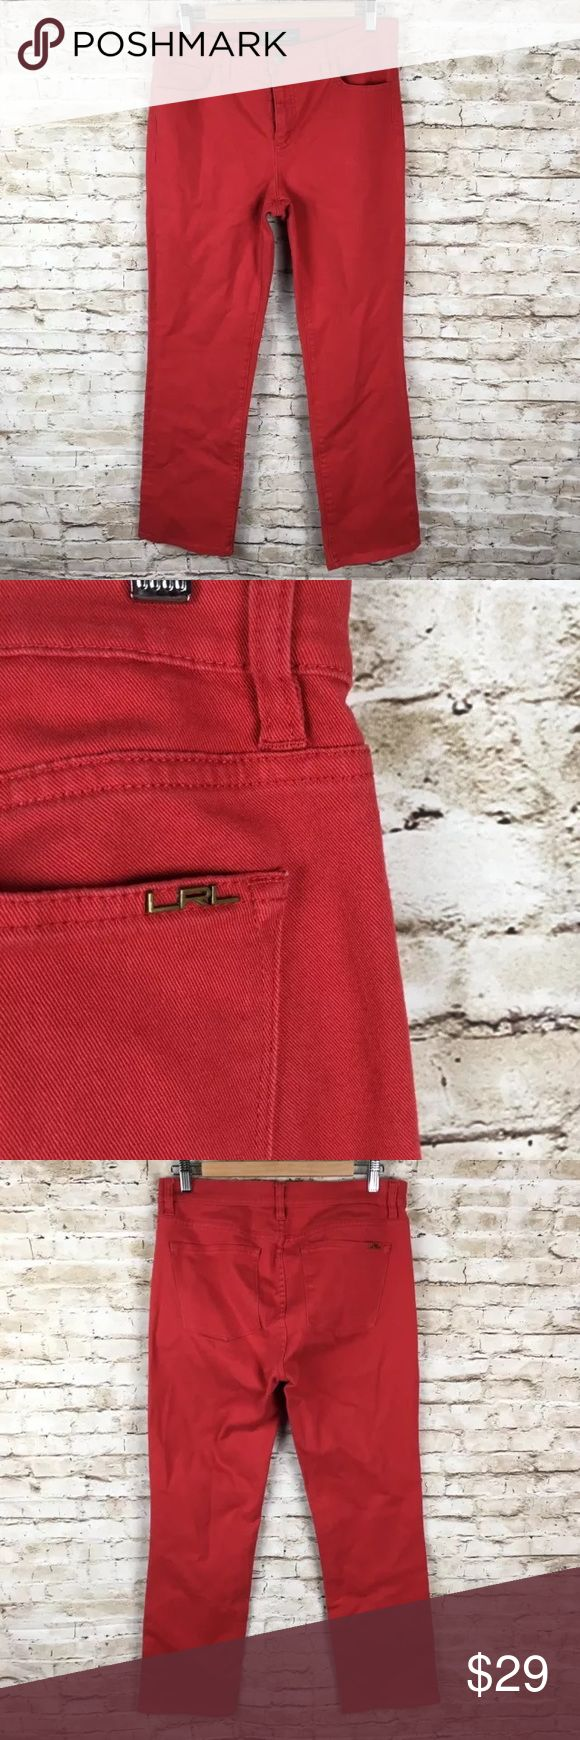 "Lauren Ralph Lauren red jeans sz 10 straight leg Lauren Ralph Lauren womens red jeans sz 10 classic straight stretch   Gently used condition. No flaws  Approximate measurements taken laying flat, un-stretched:  Waist 16"", rise 9"", inseam 30"" Lauren Ralph Lauren Jeans Straight Leg"